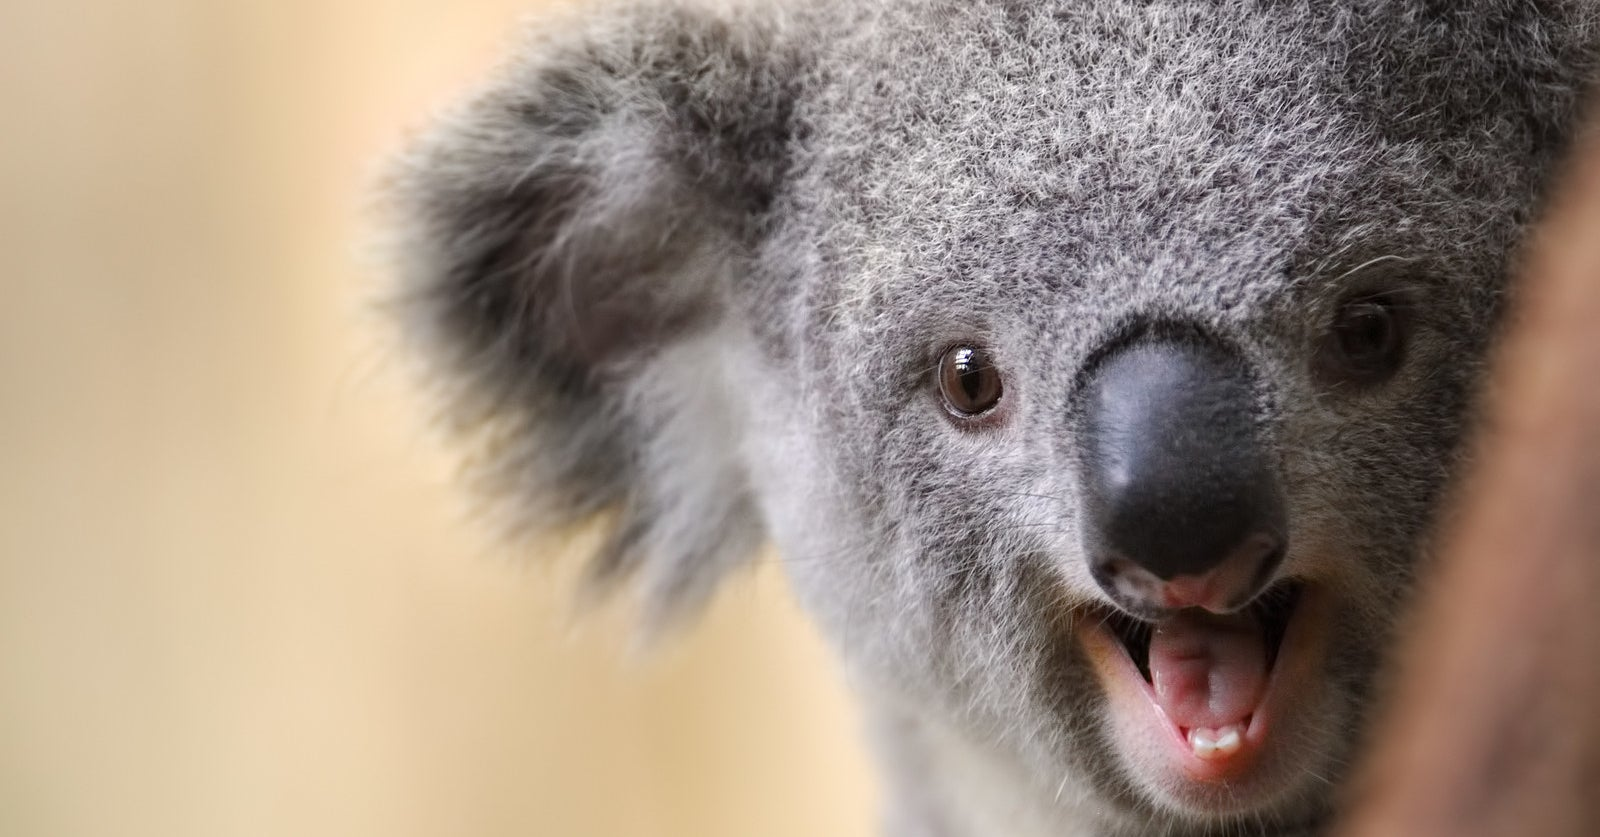 Just A Whole Lot Of Thirsty Koalas...